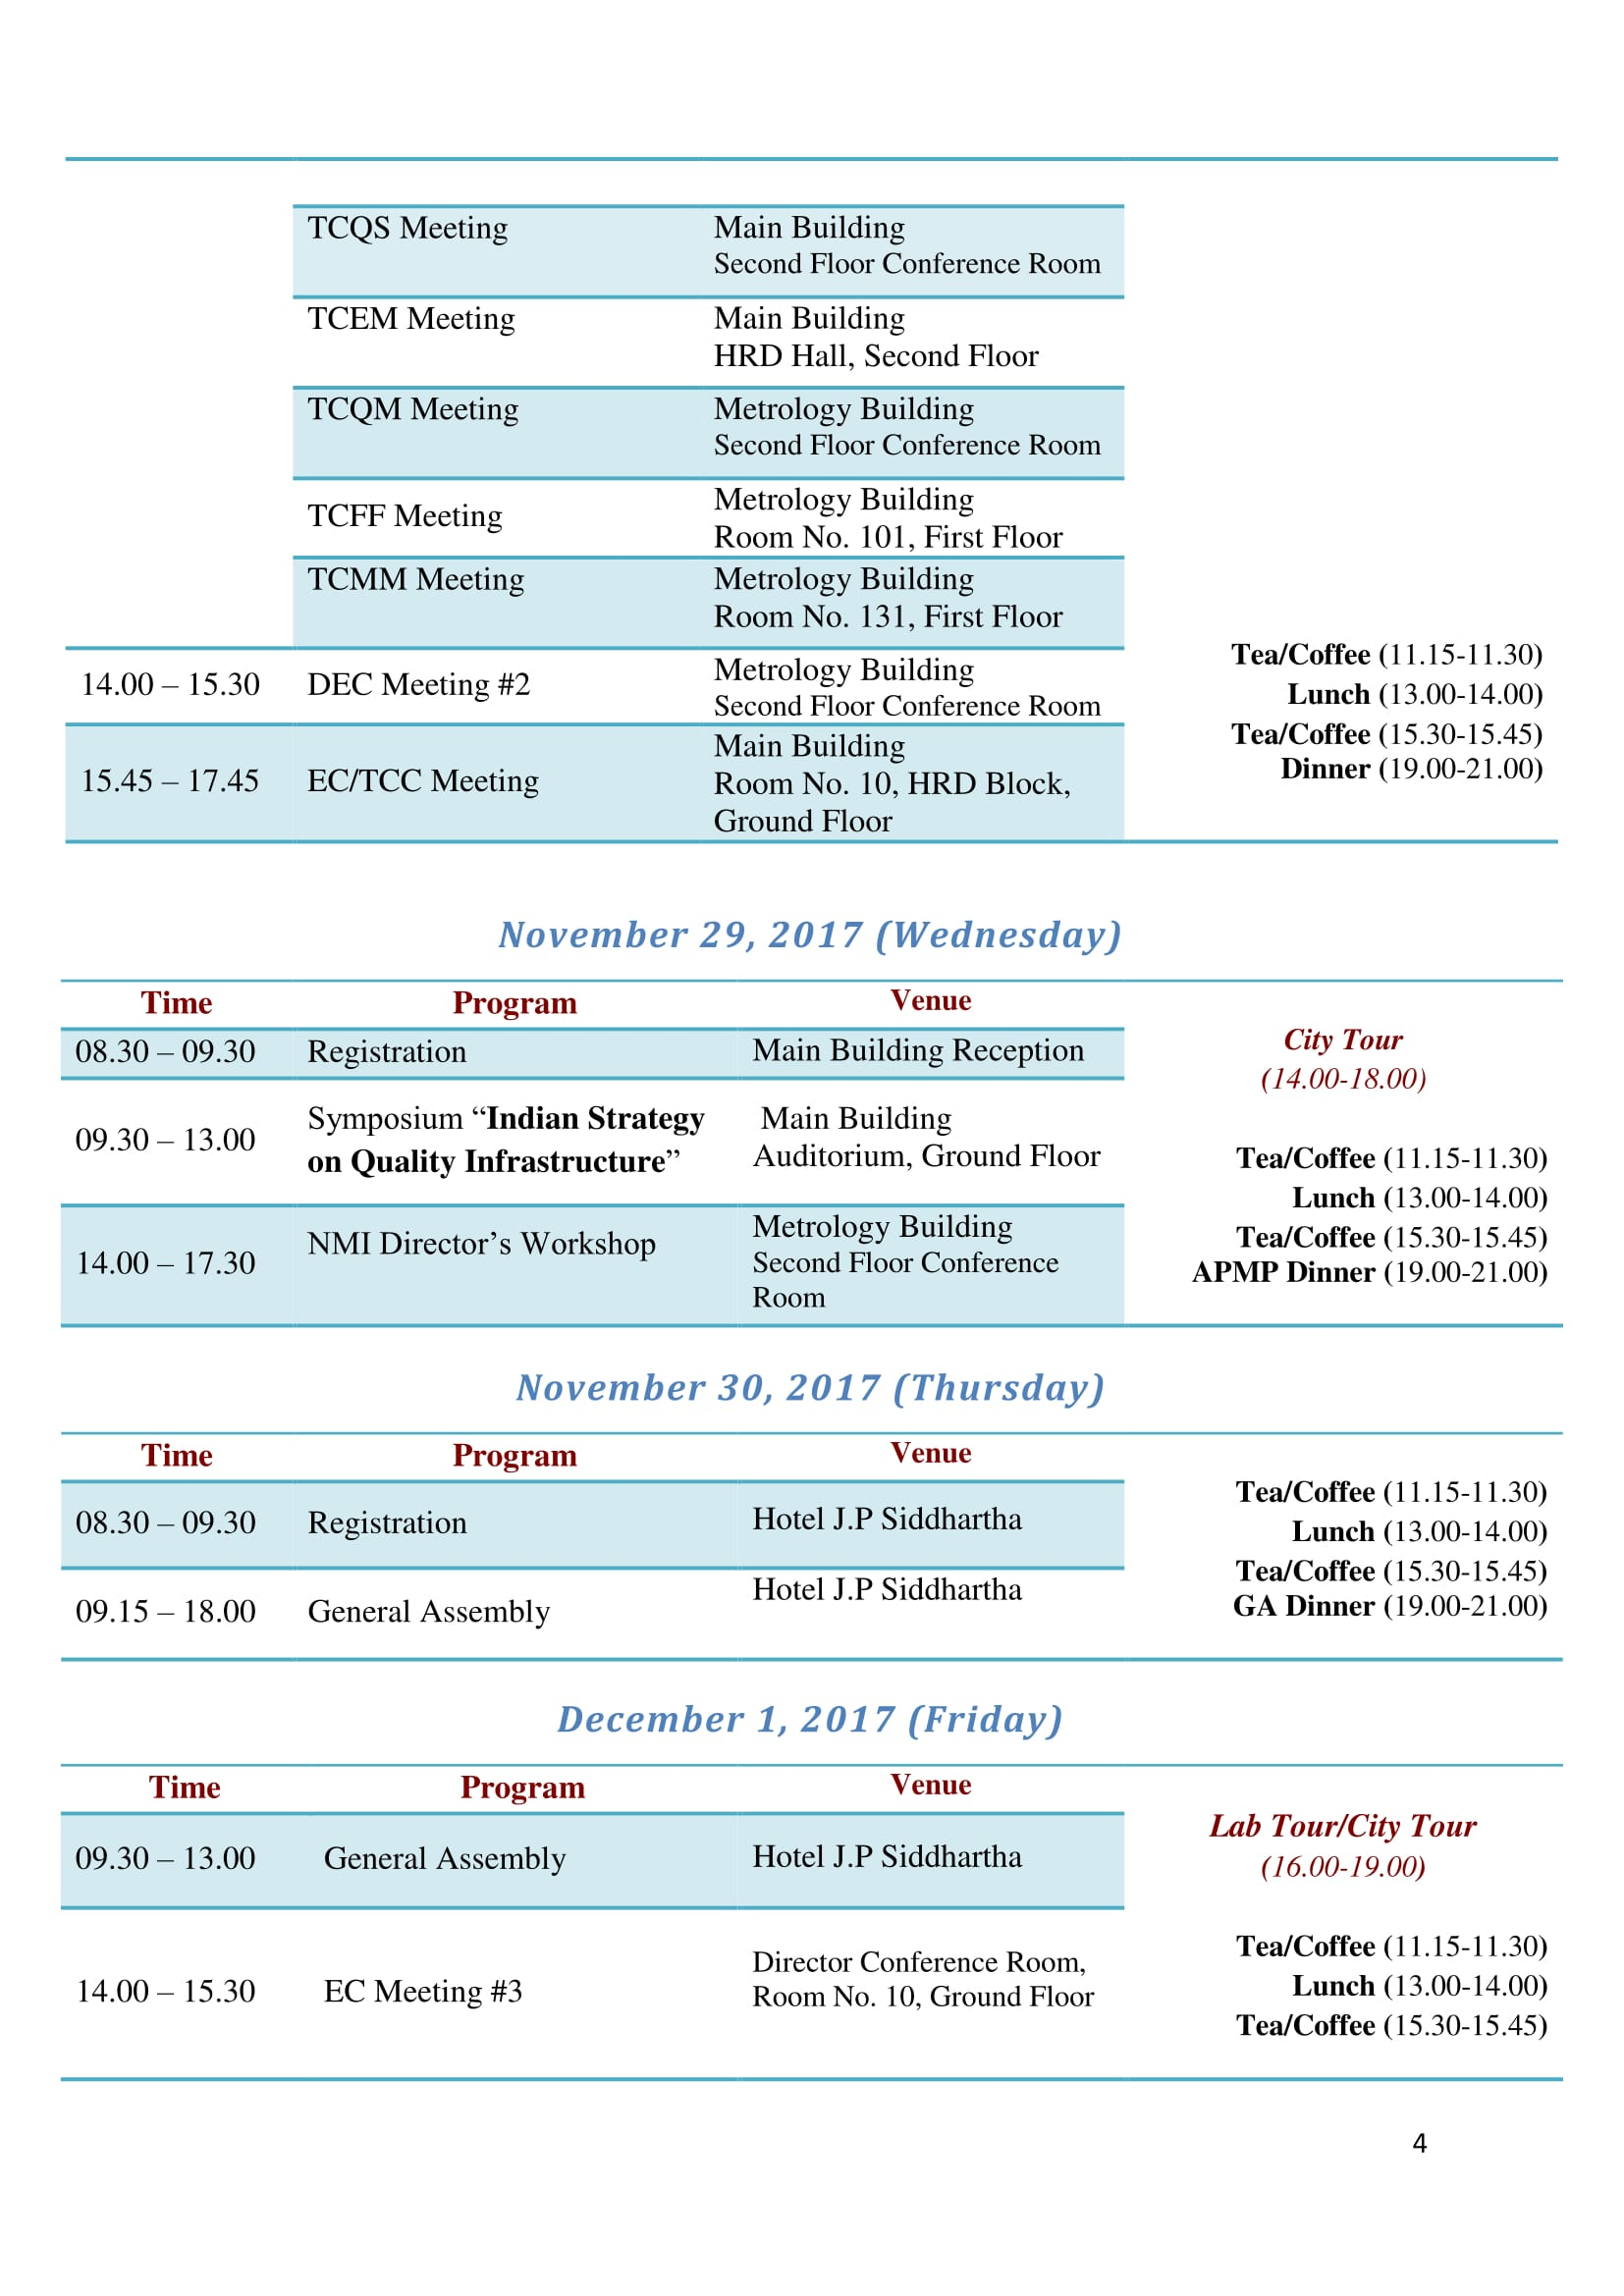 final Program Schedule(modified)-4